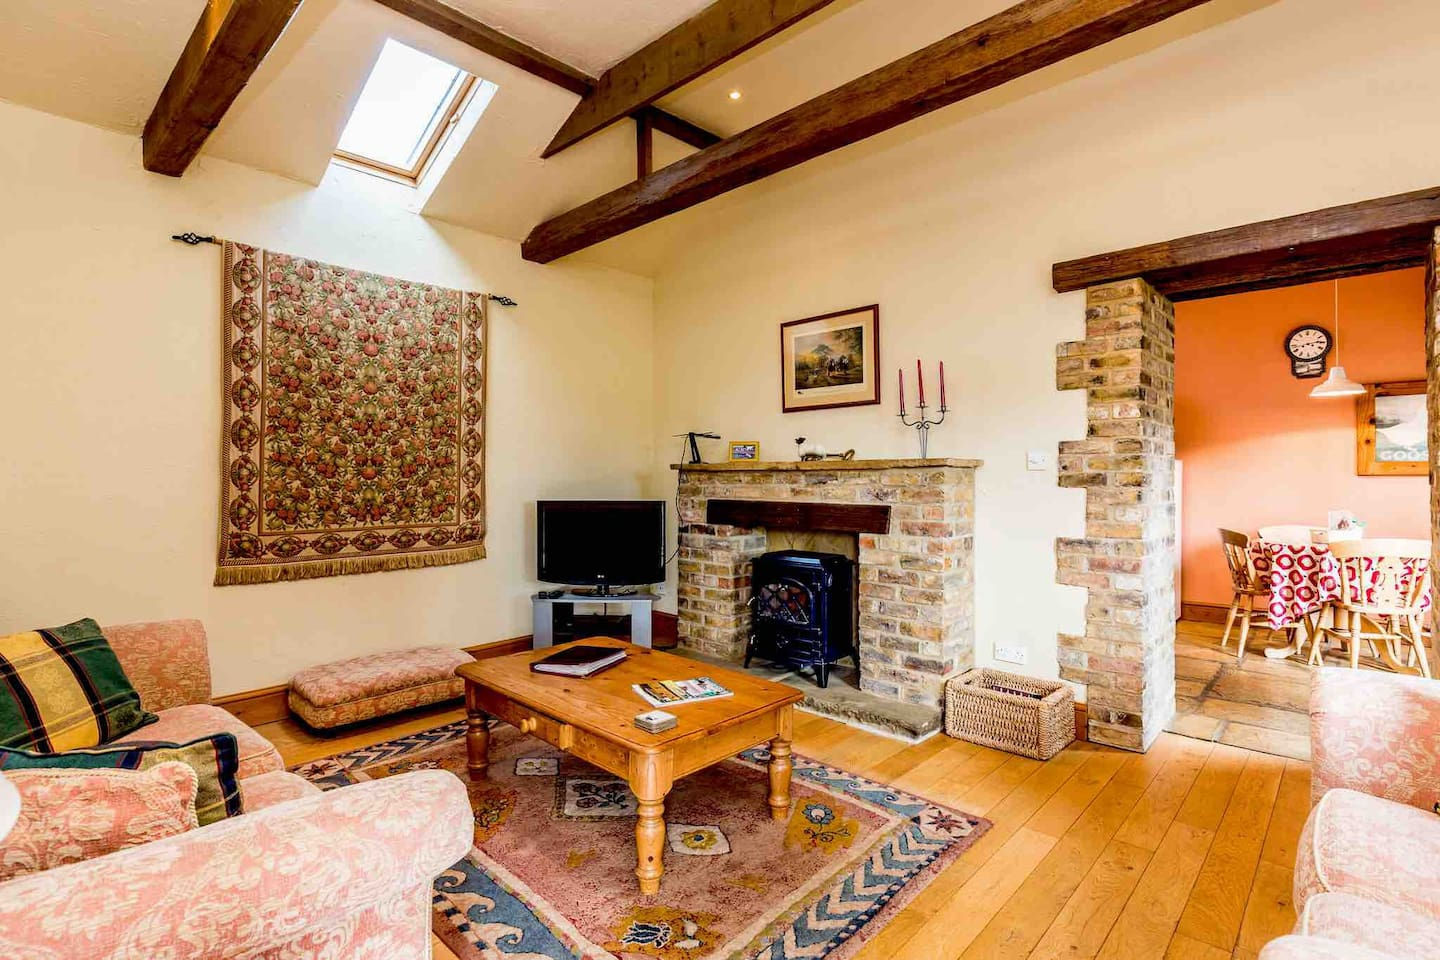 Guests often surprised by the spacious accommodation and soon settle in and feel at home